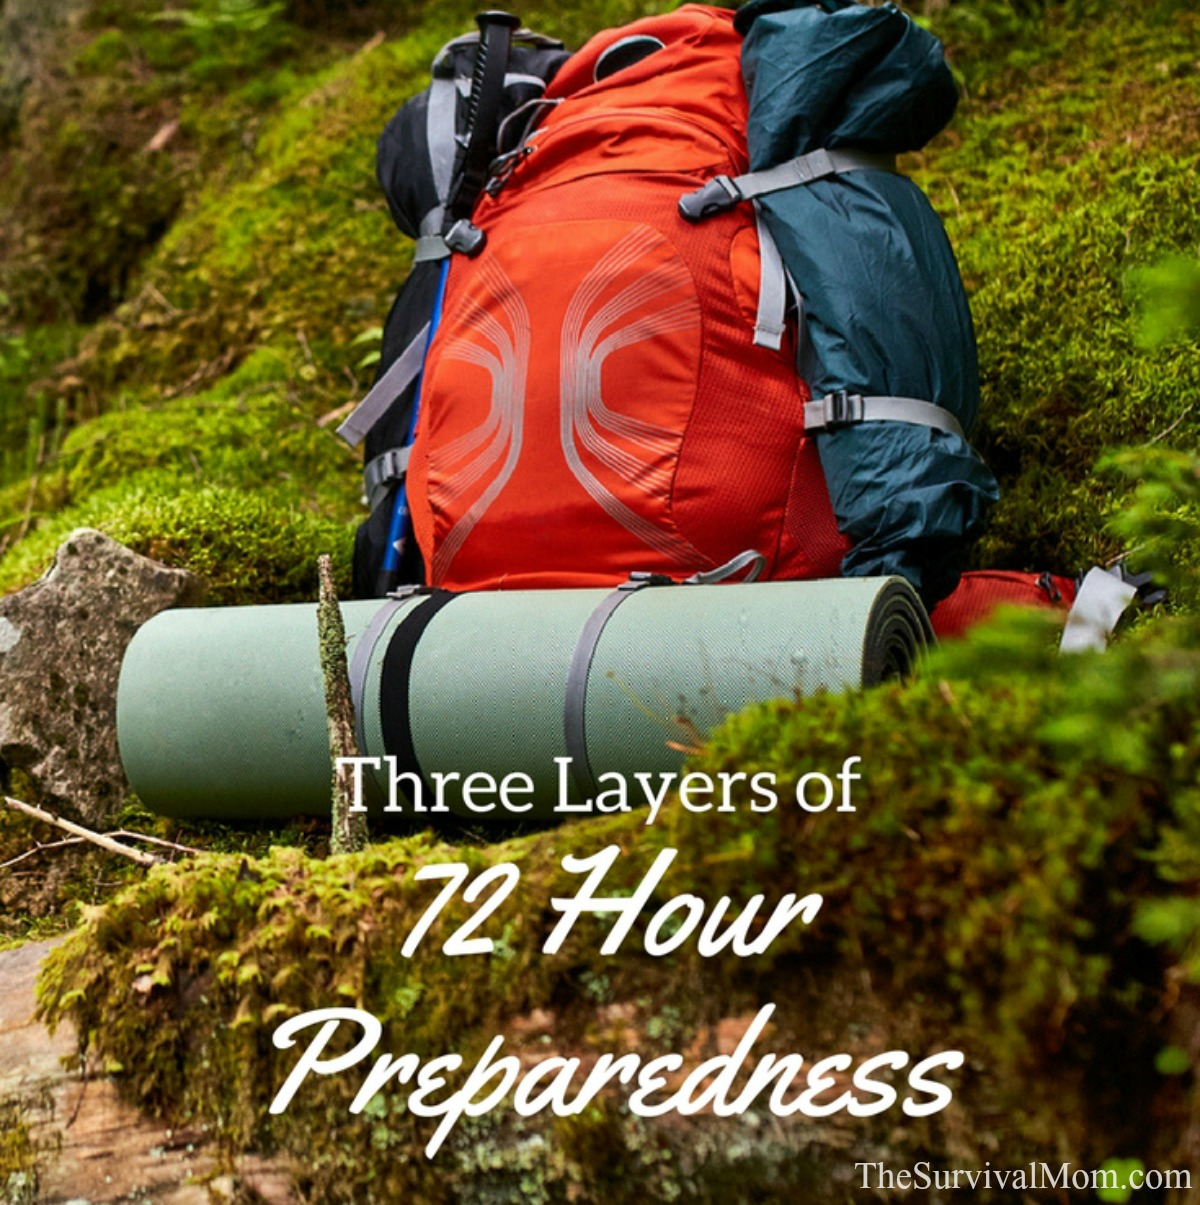 Three Layers of 72 Hour Preparedness via The Survival Mom